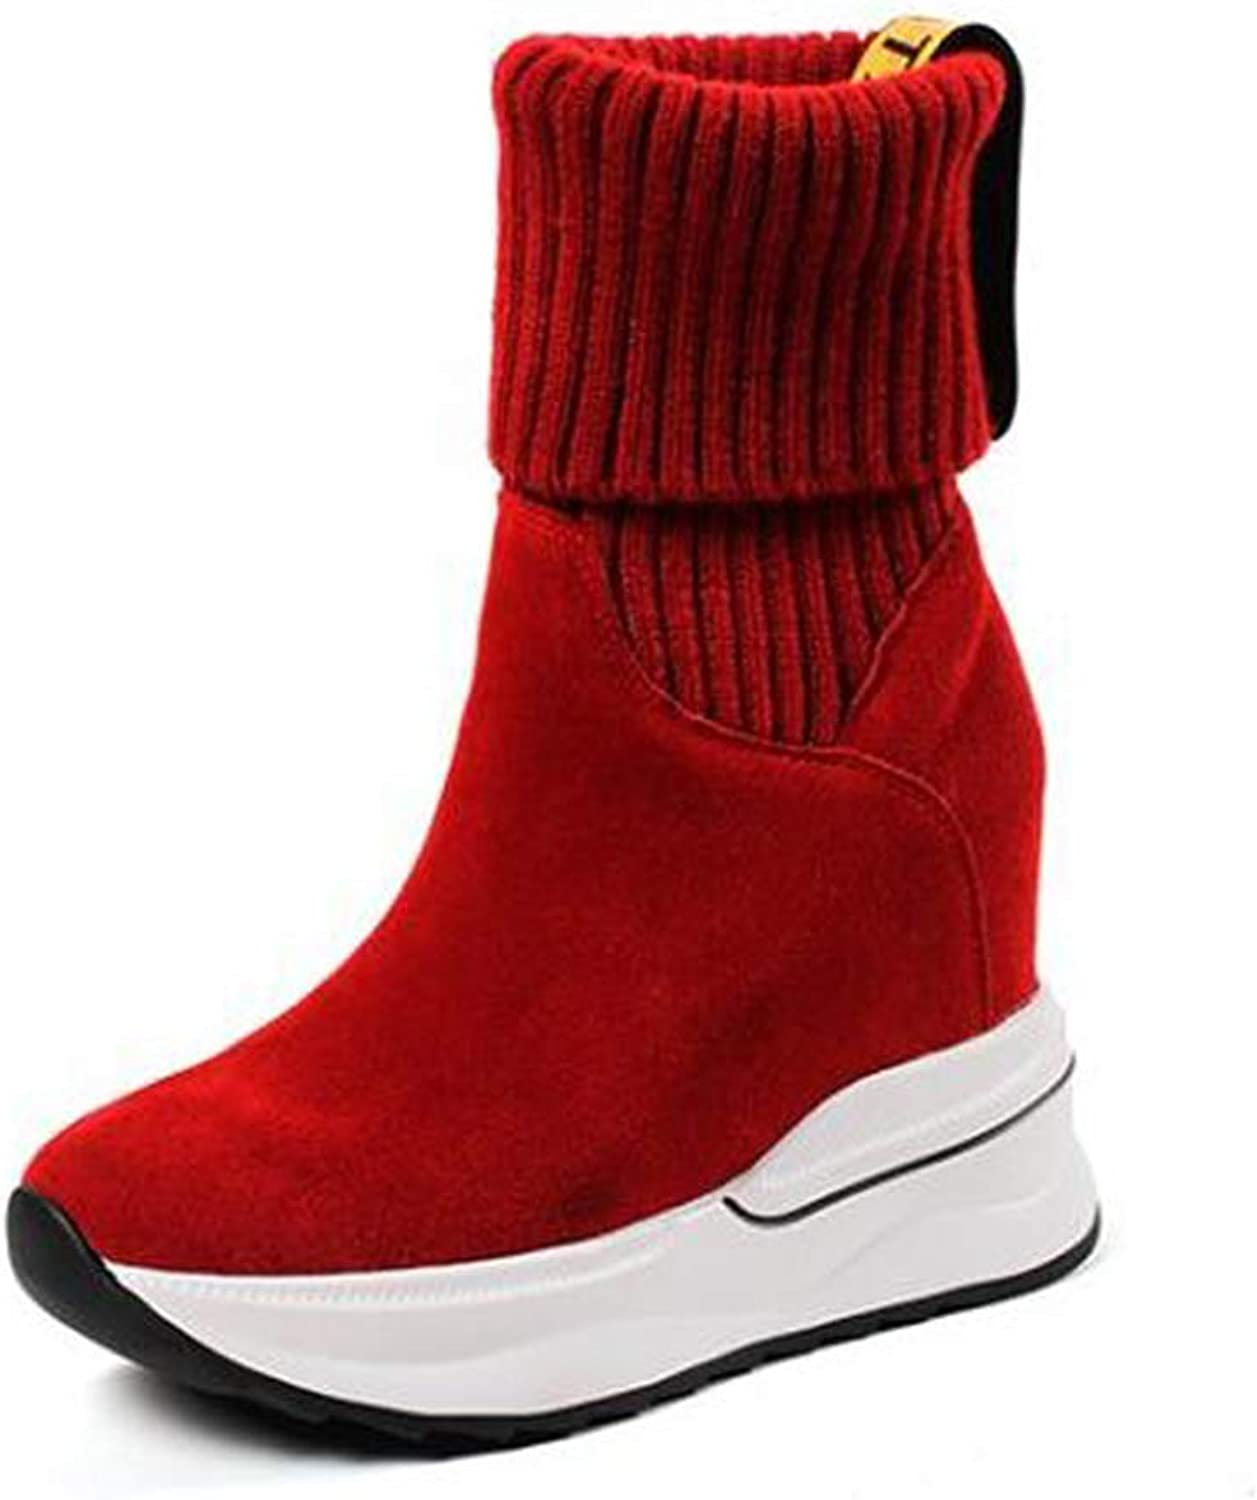 Women's Booties, Fall Winter Leather Socks shoes Round Head Comfortable Invisible Increase Fashion Ankle Boots Red Black (color   A, Size   37)